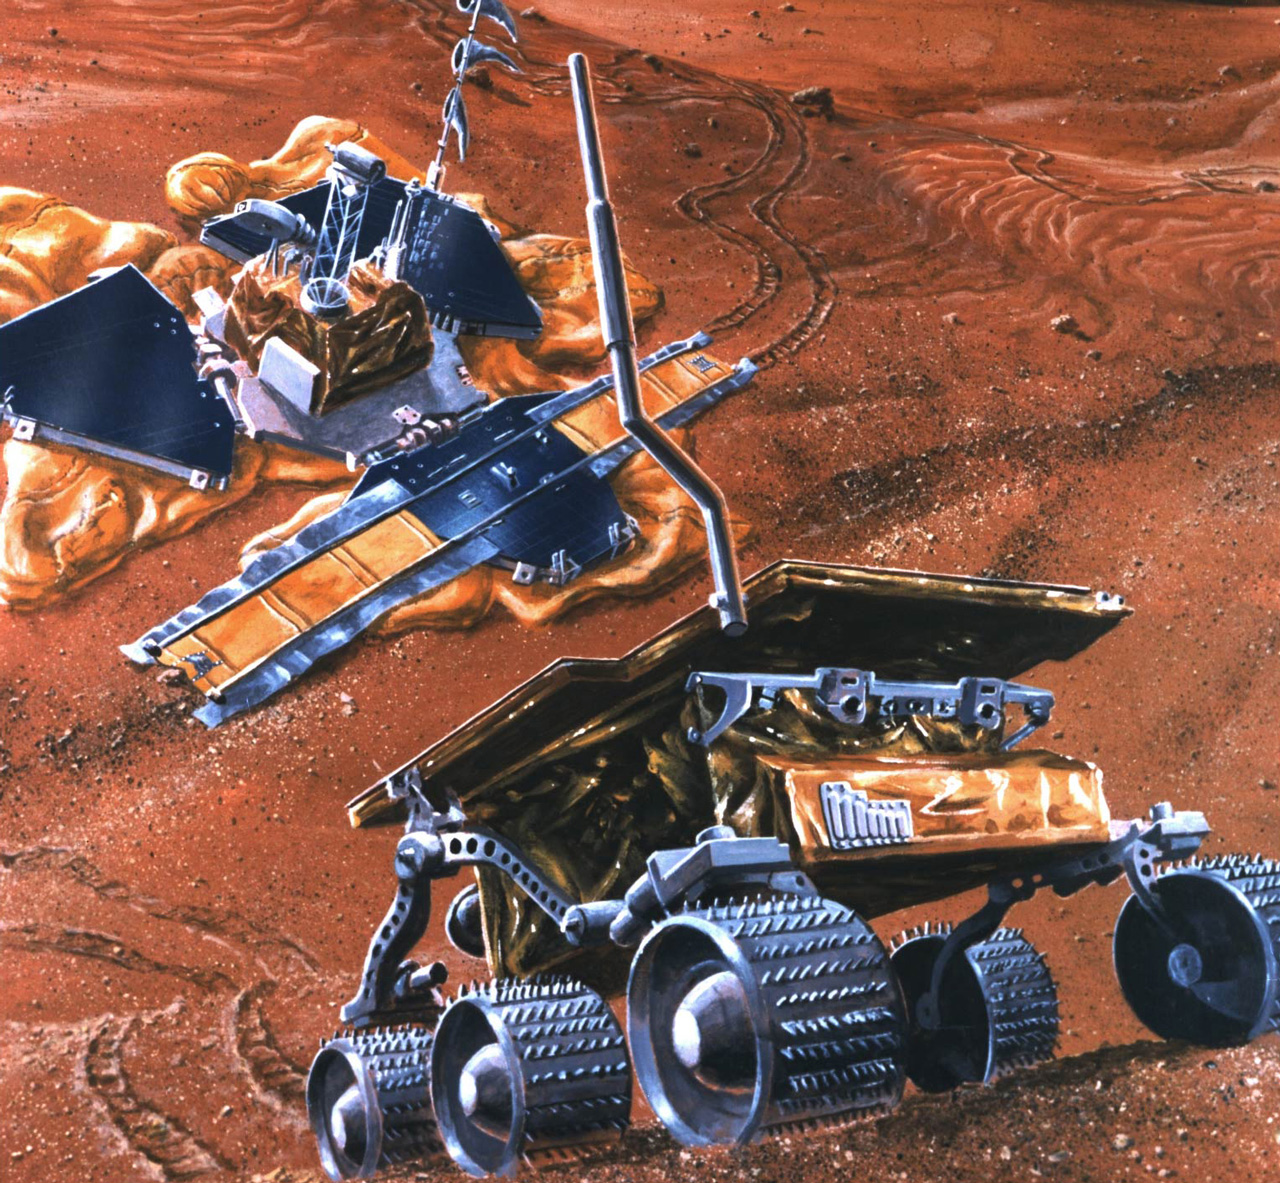 Rover climbing hill on Mars with science station behind it.